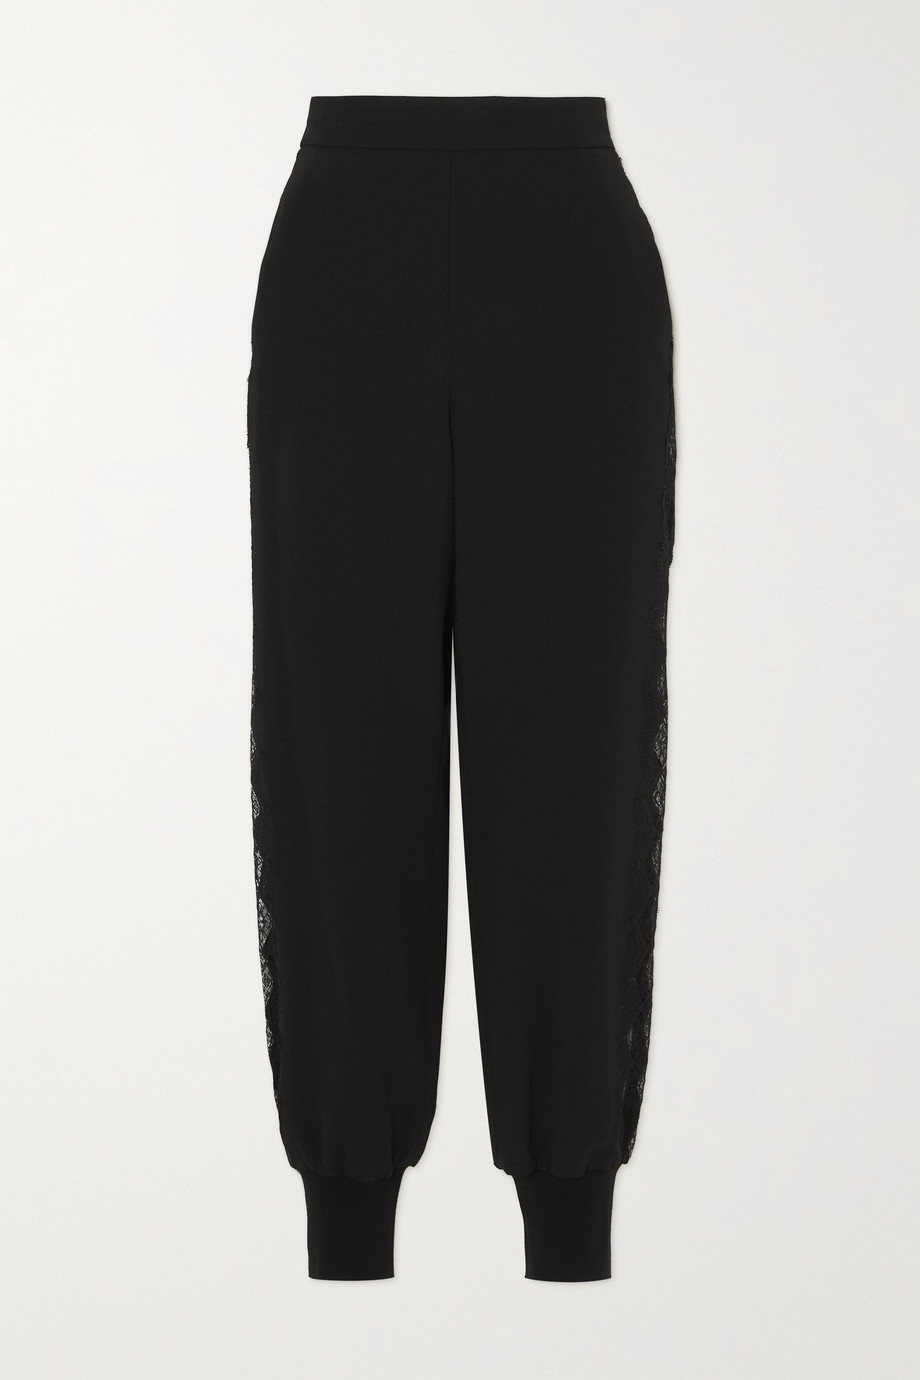 Stella McCartney + NET SUSTAIN Julia lace-trimmed stretch-cady track pants